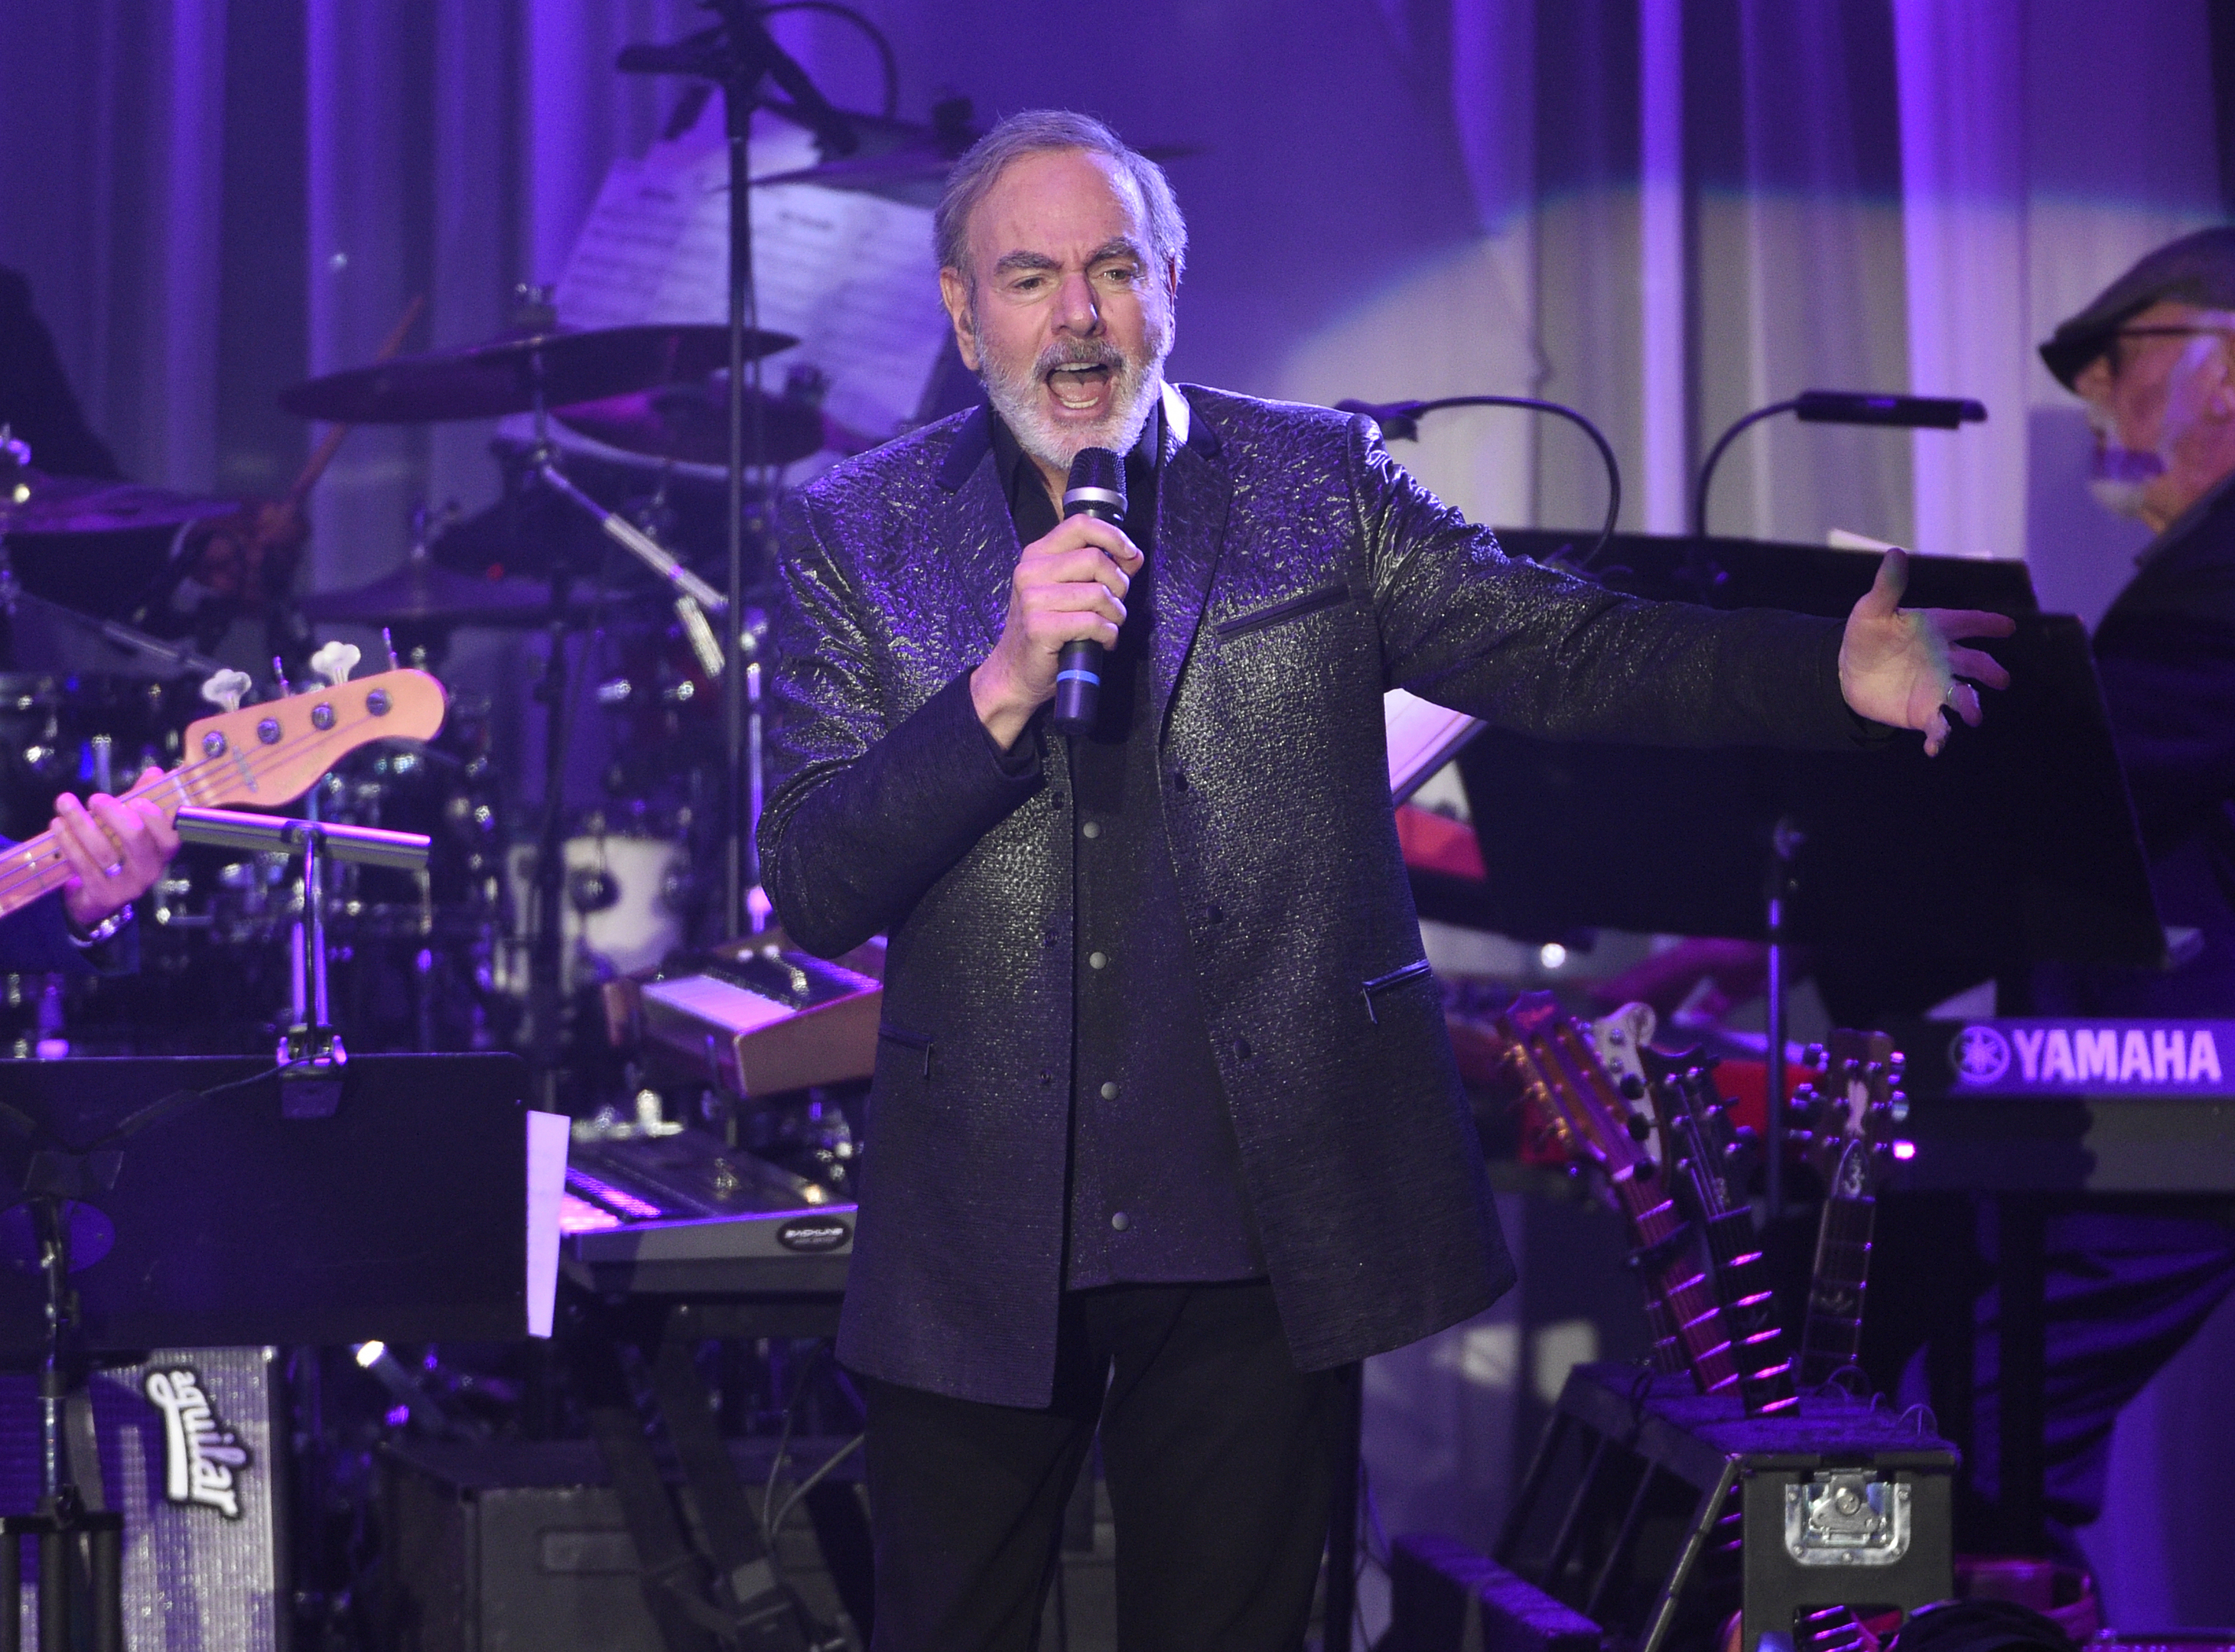 Neil Diamond announced he was retiring from touring after being diagnosed with Parkinson's (Chris Pizzello/Invision/AP)